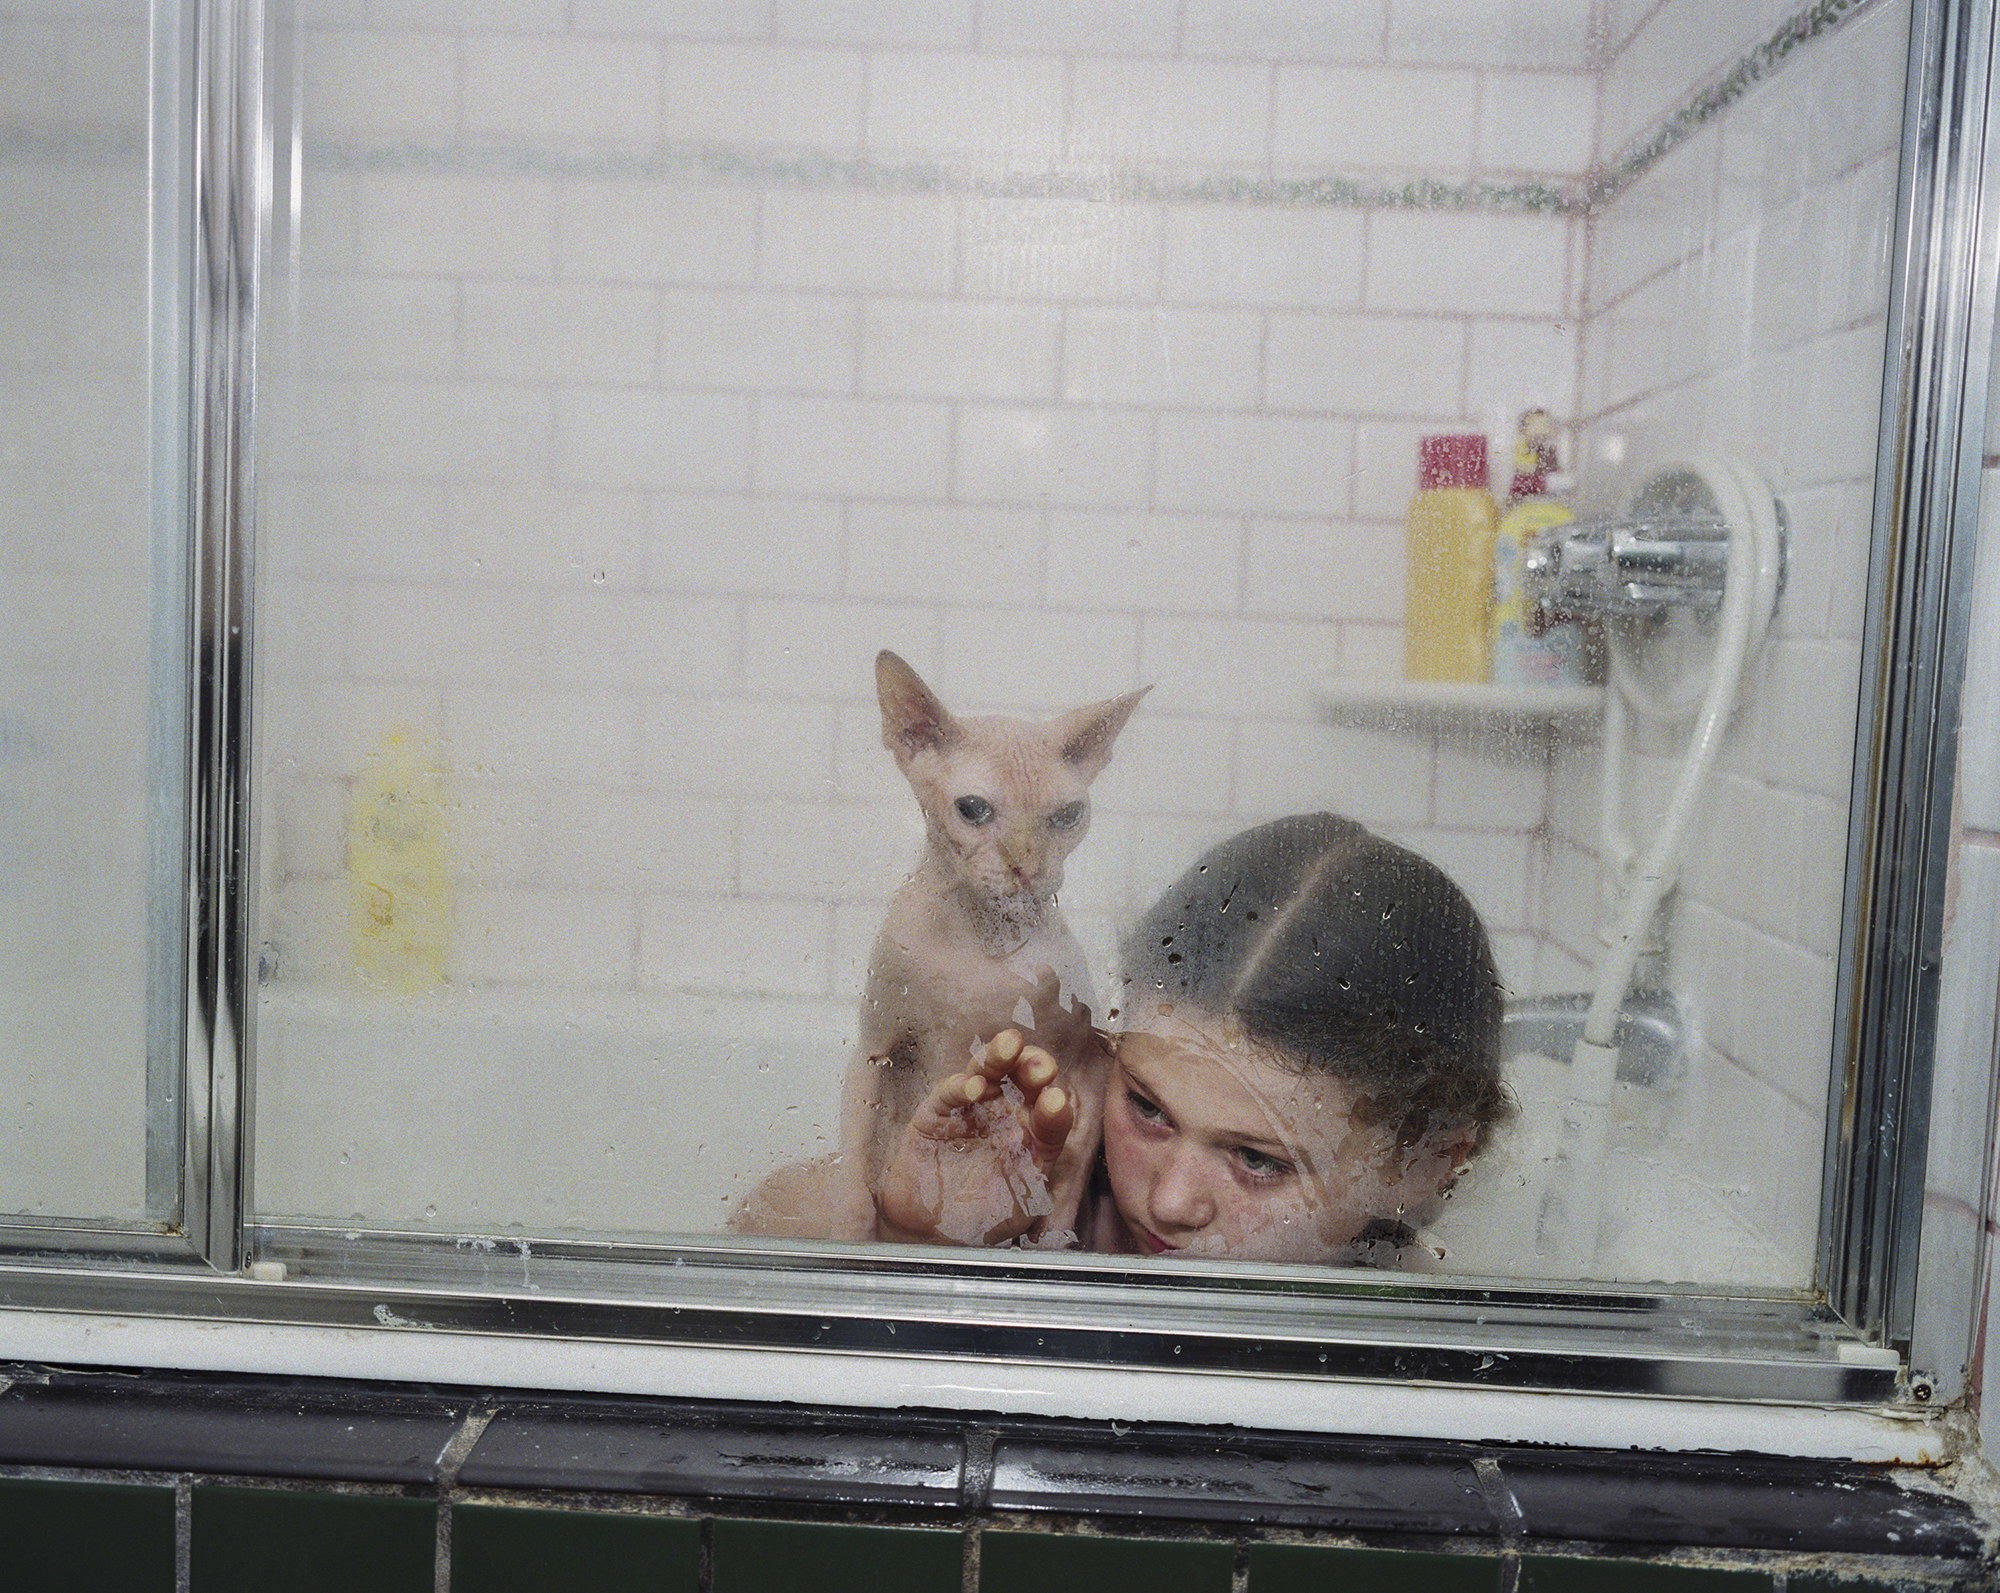 The photographer's daughter Amelia with a sphynx cat in the shower